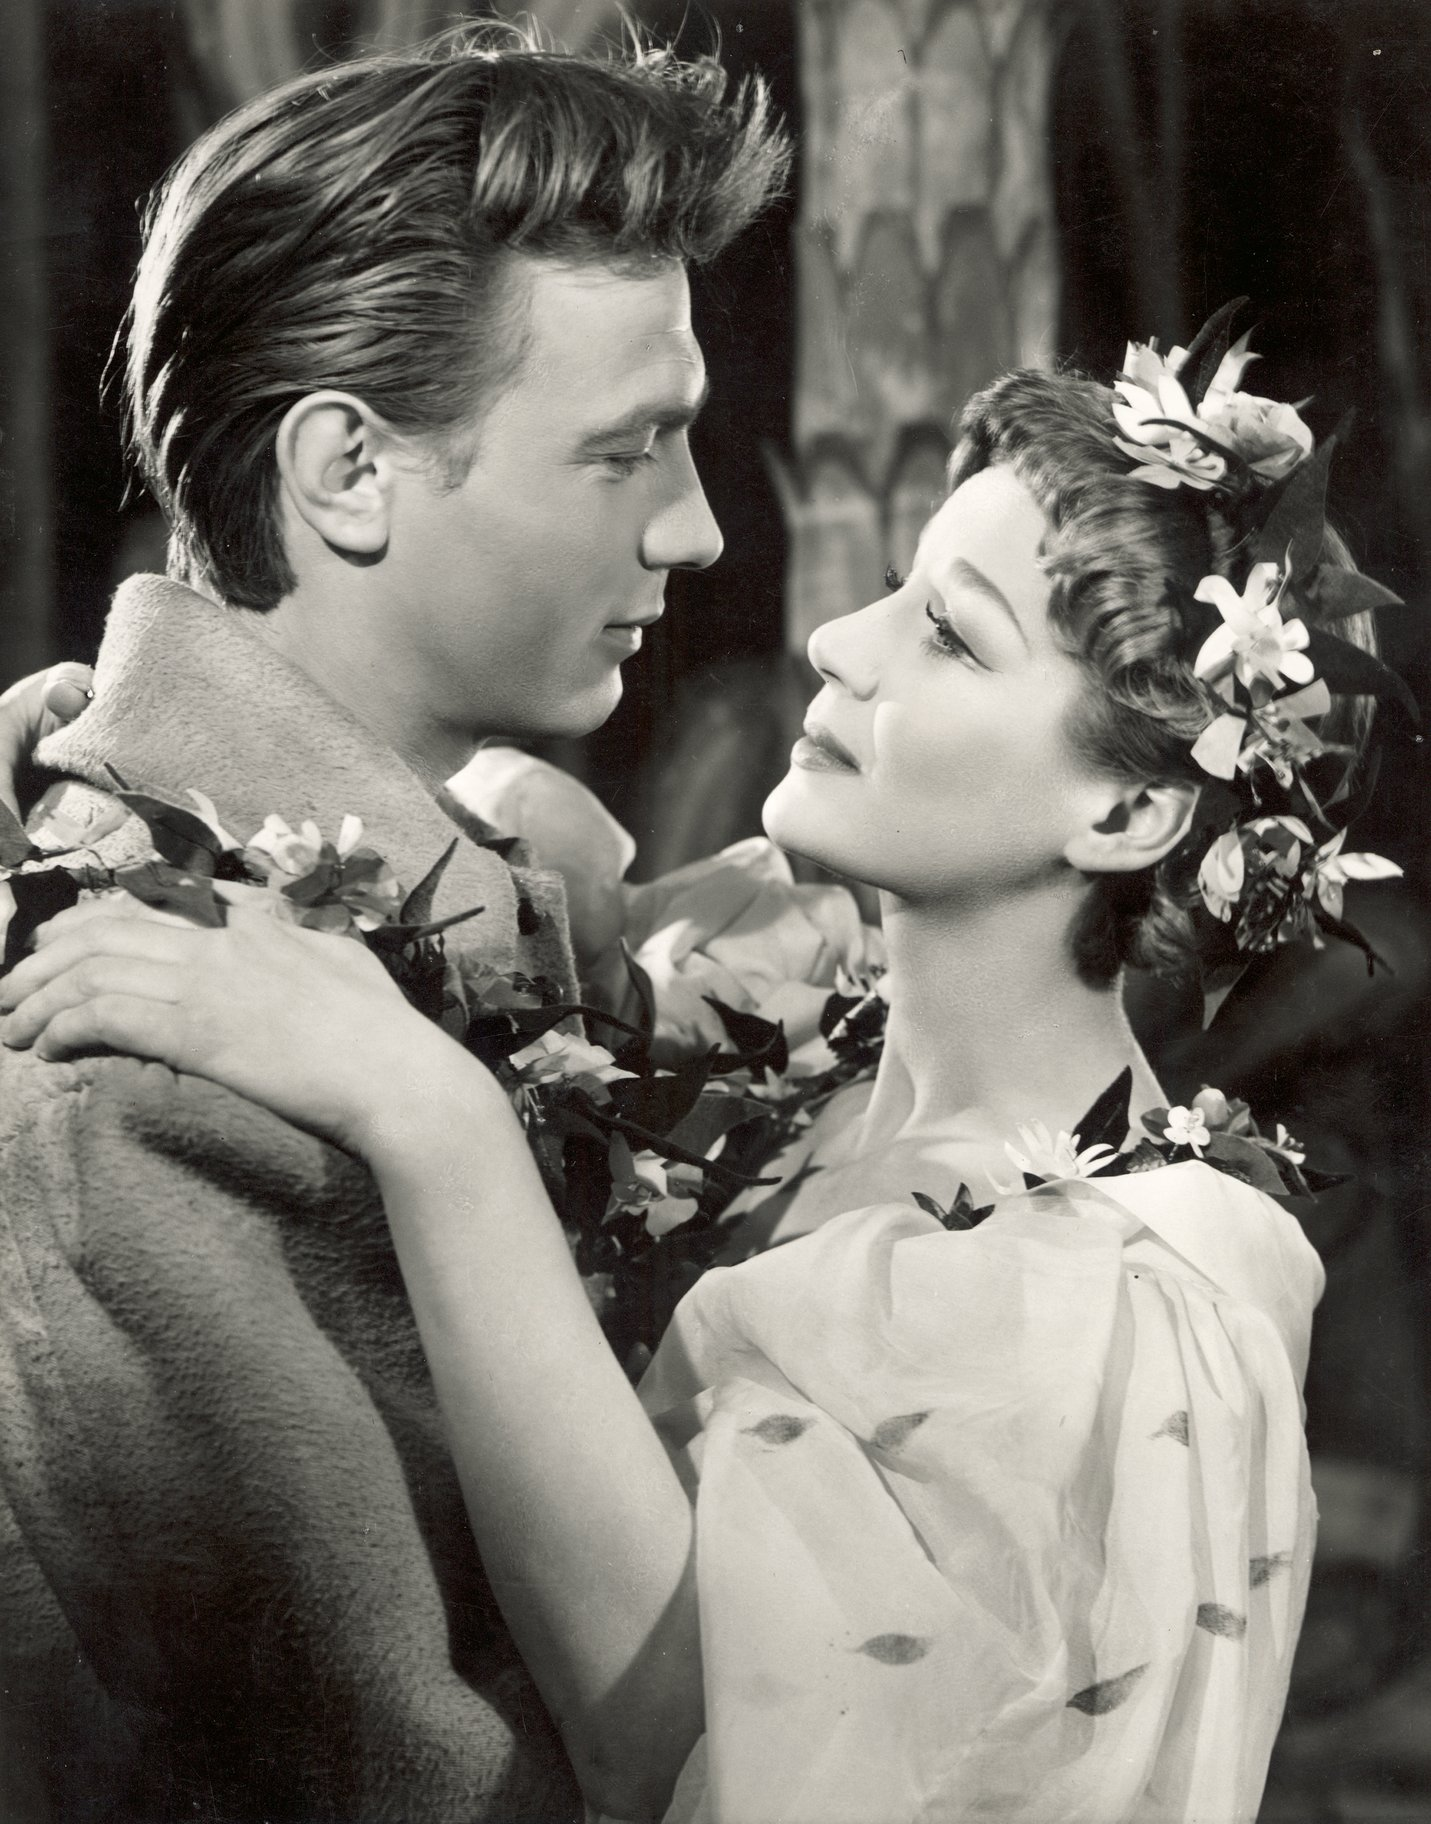 A man and woman embrace, covered with flowers.